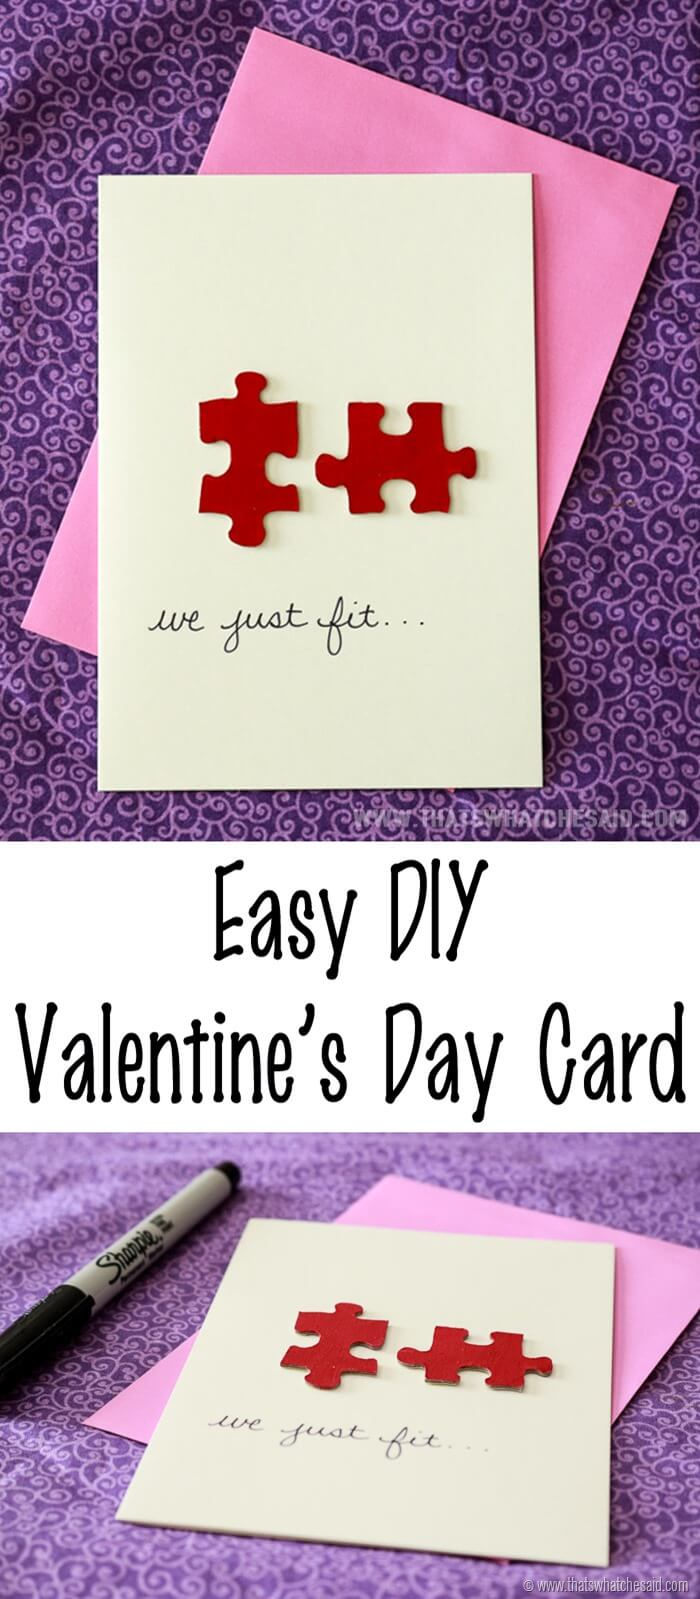 Easy DIY Valentine's Day Card at www.thatswhatchesaid.com